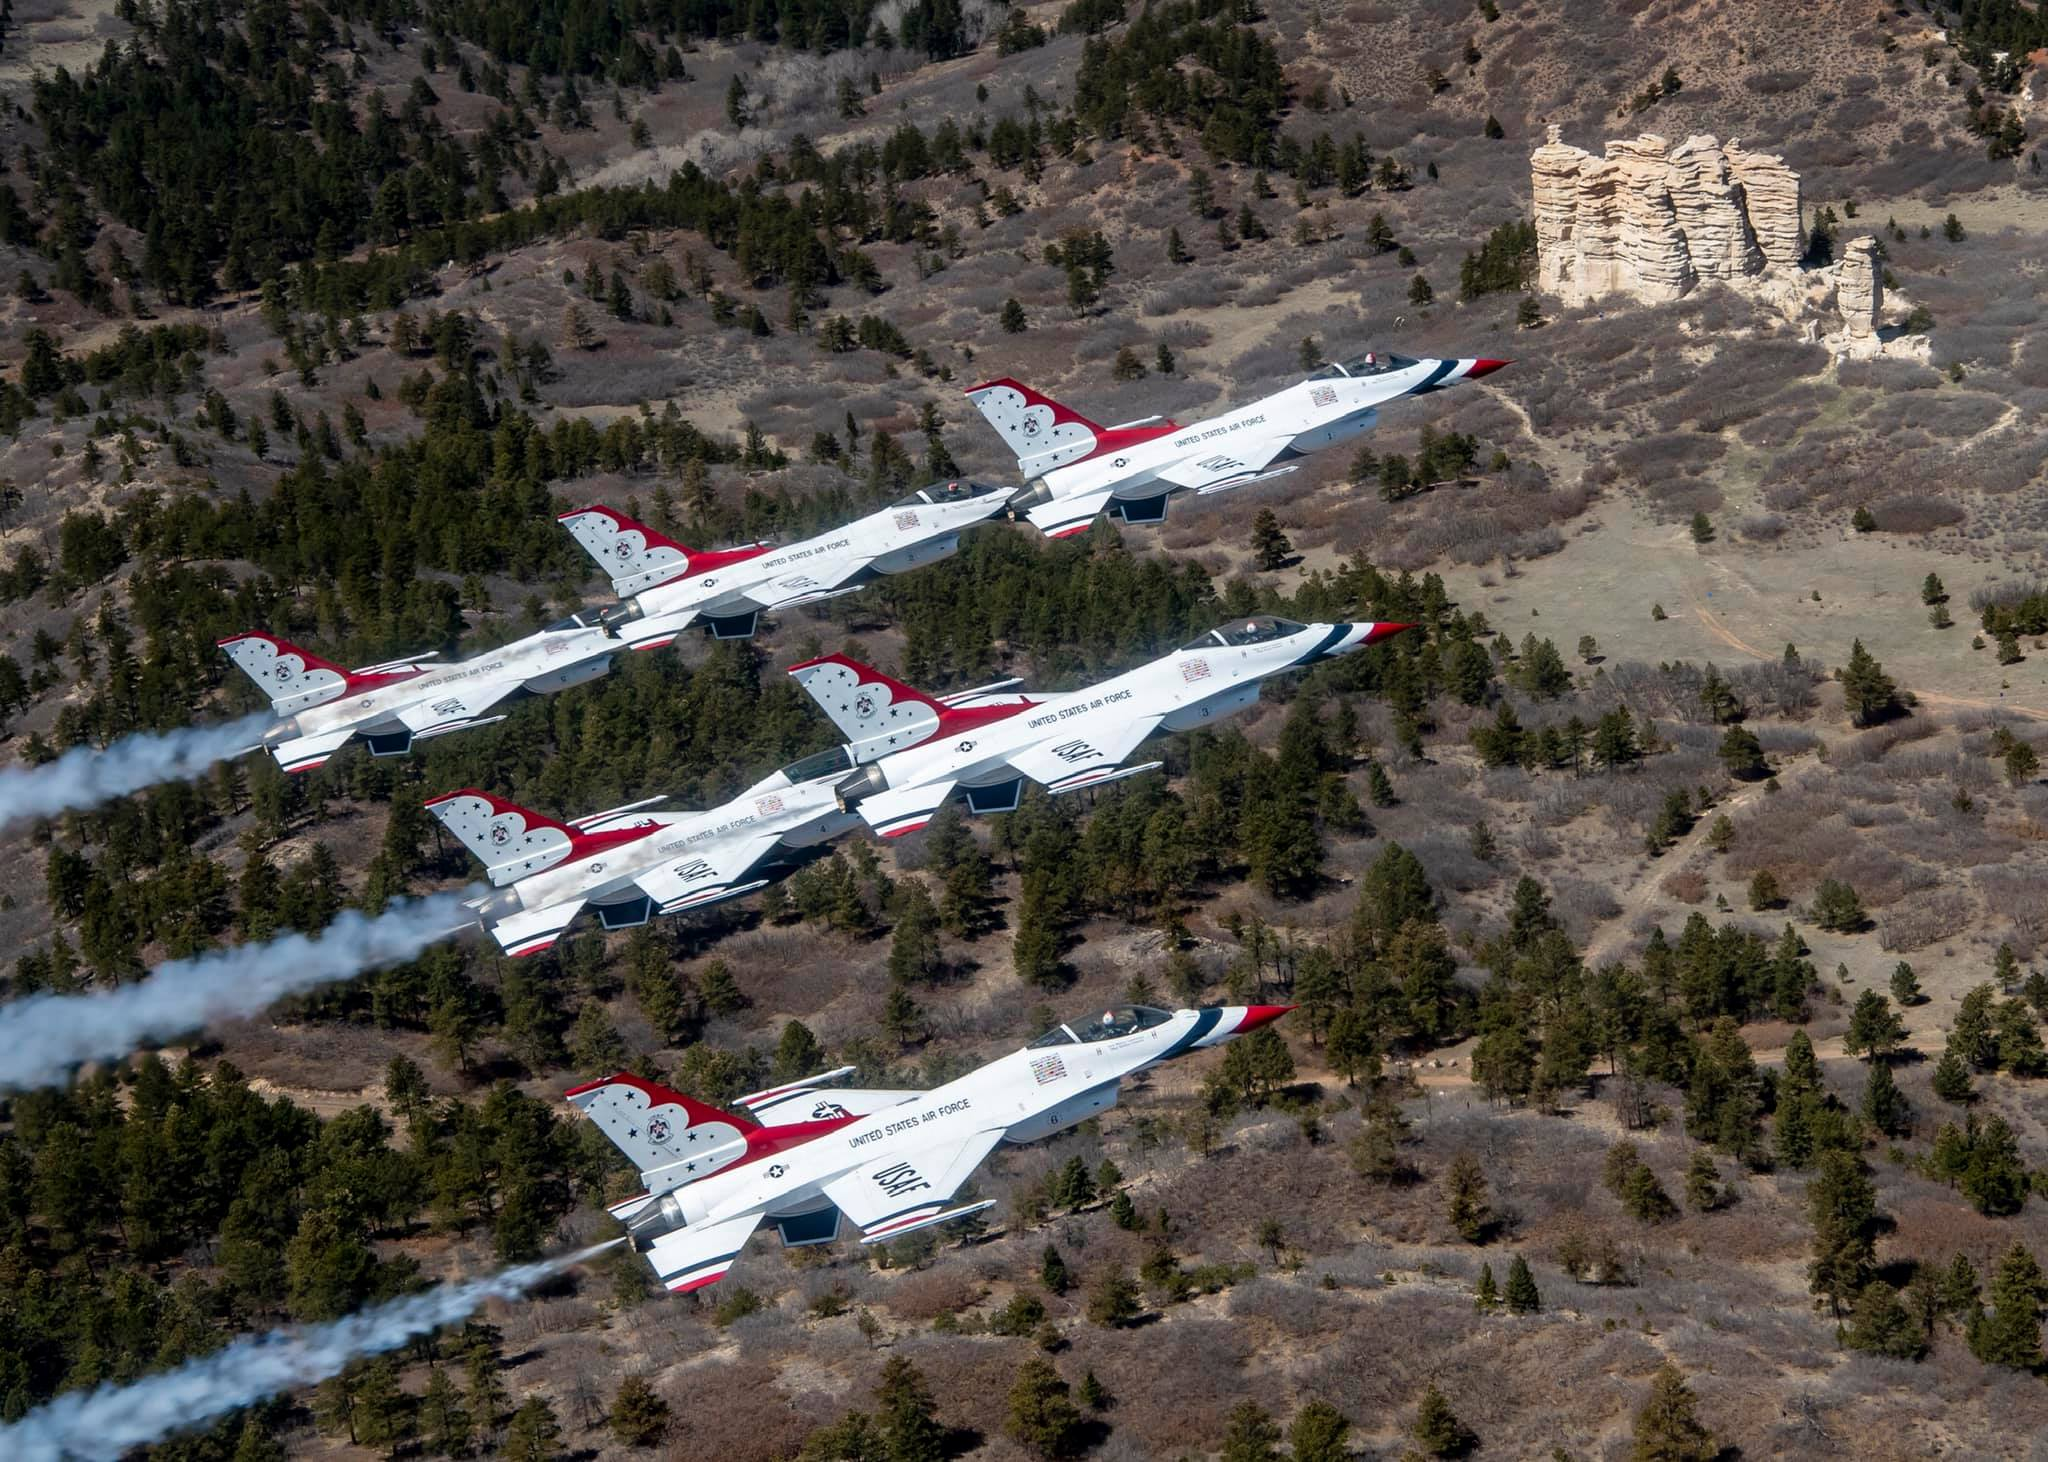 303 Magazine, United States Air Force, USAF, Air Force Thunderbirds, Air Force Academy, Josie Russell, Air Force Flyover, Community Flyover